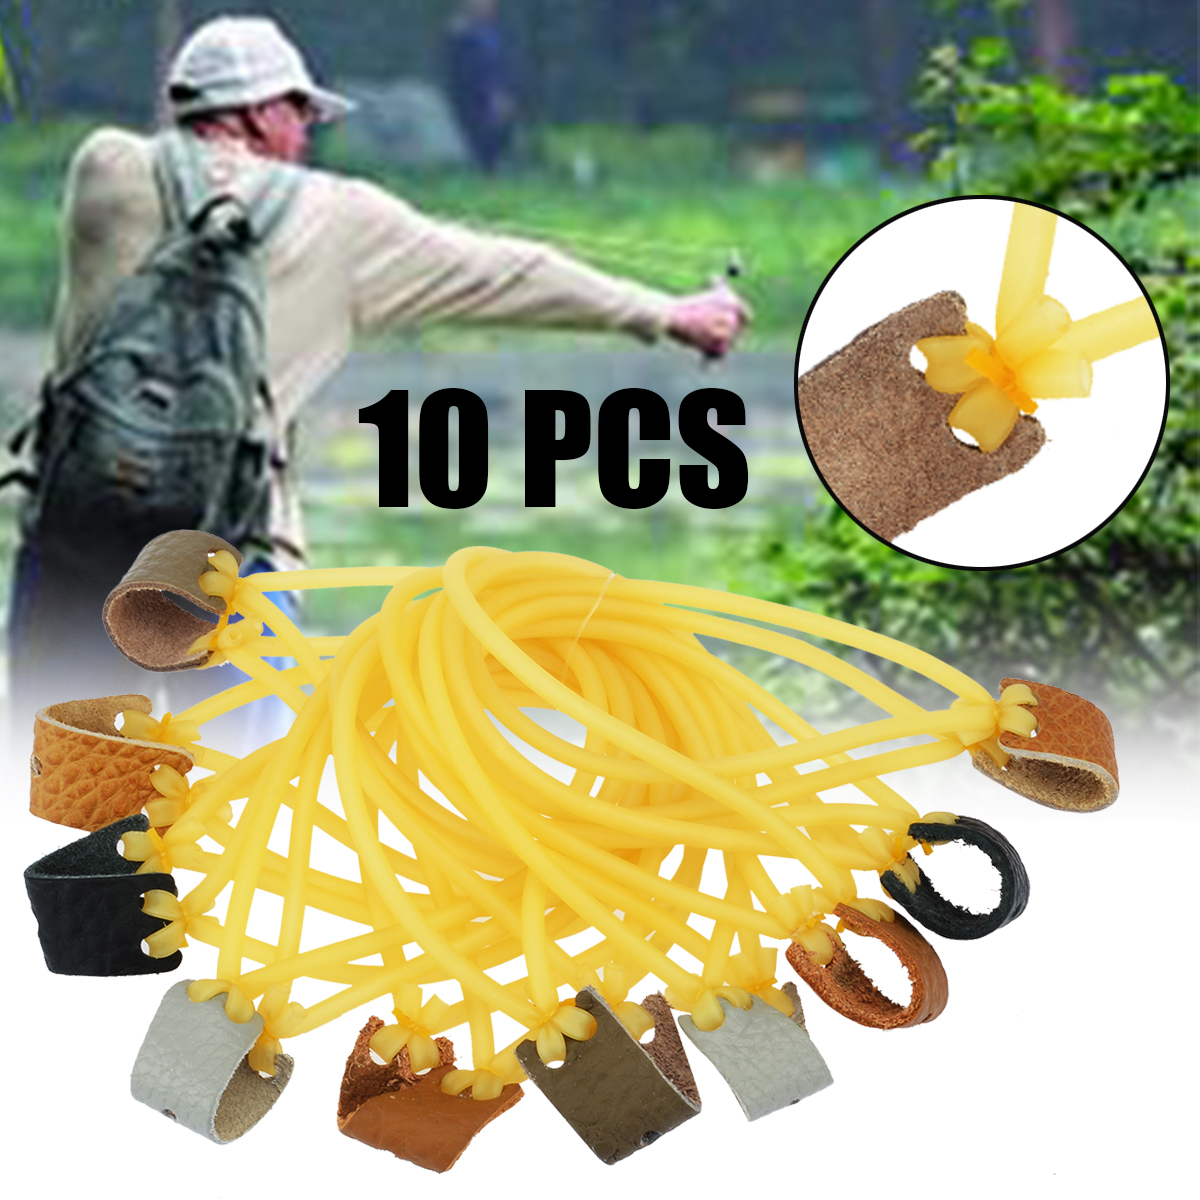 10Pcs/ Lot Elastic Bungee Rubber Band Portable Durable Elastic Outdoor Tools For Slingshot Outdoor Hunting